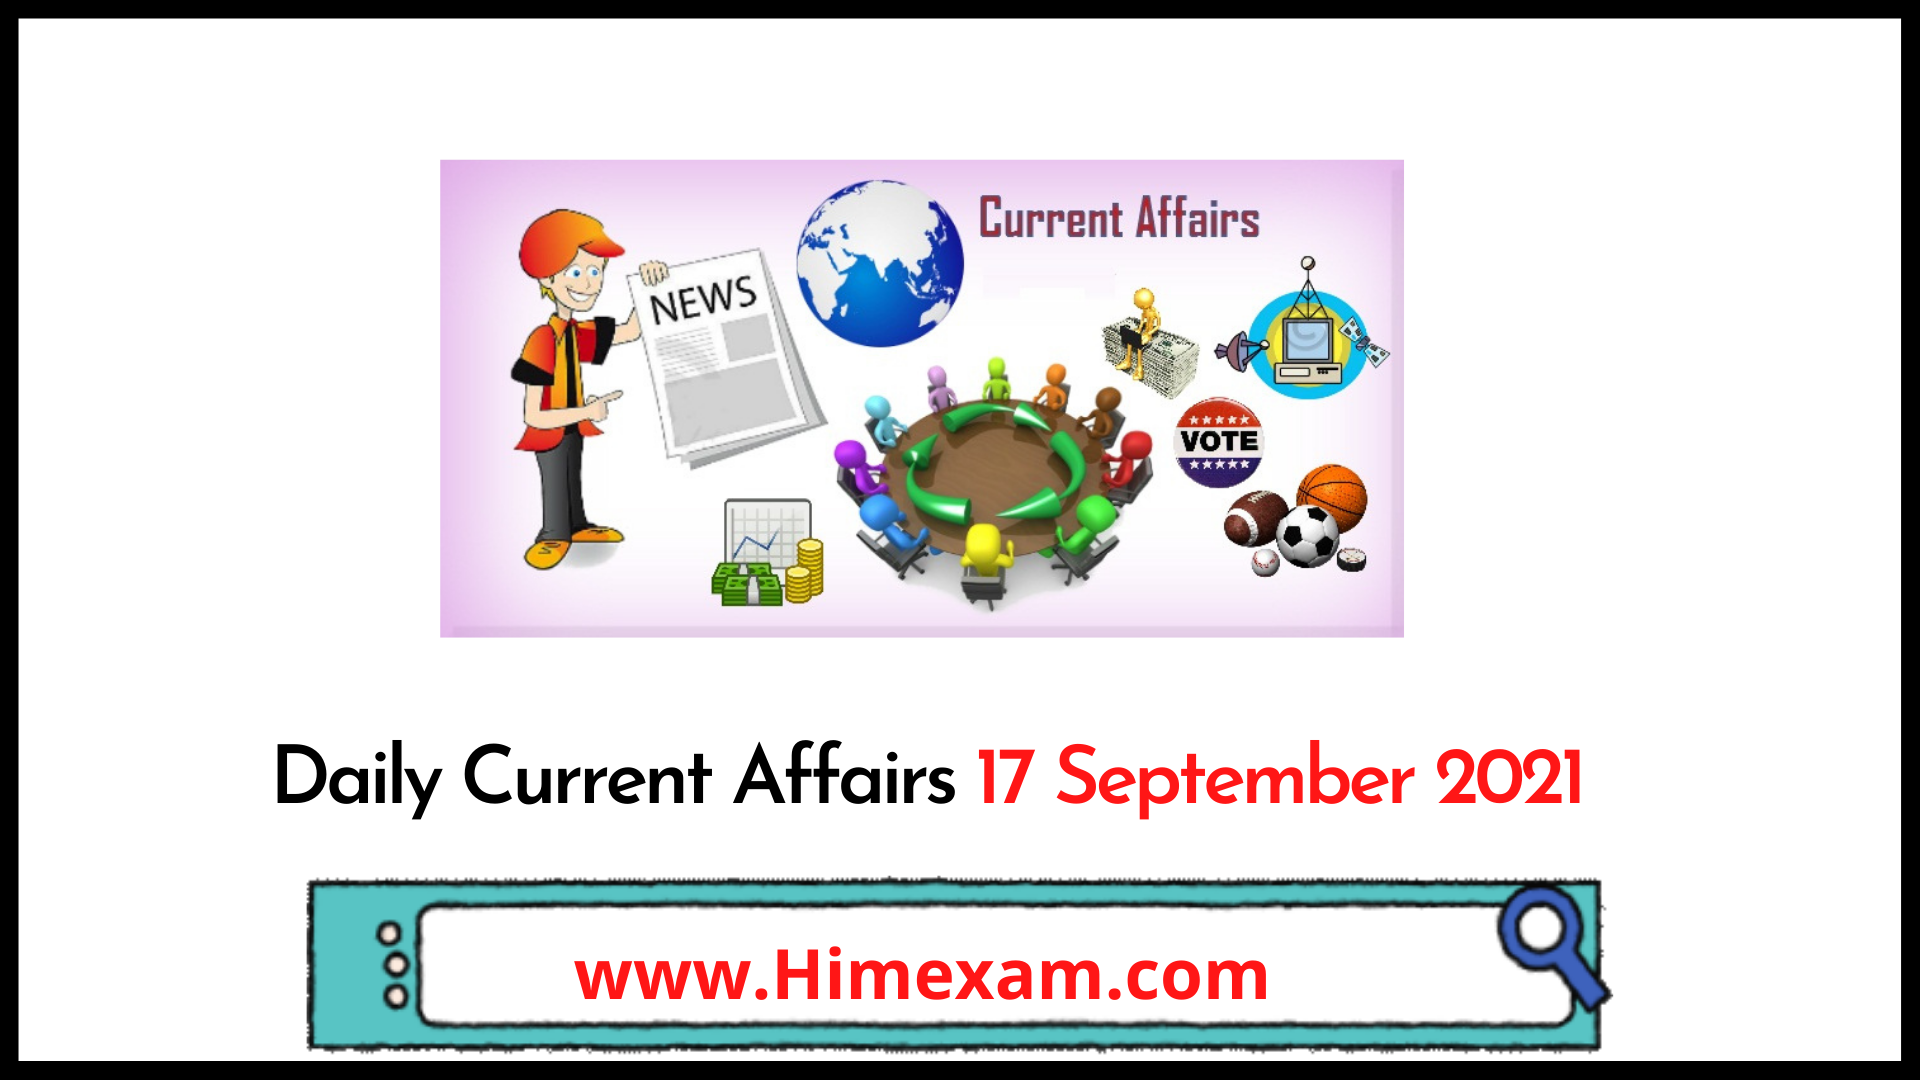 Daily Current Affairs 17 September 2021